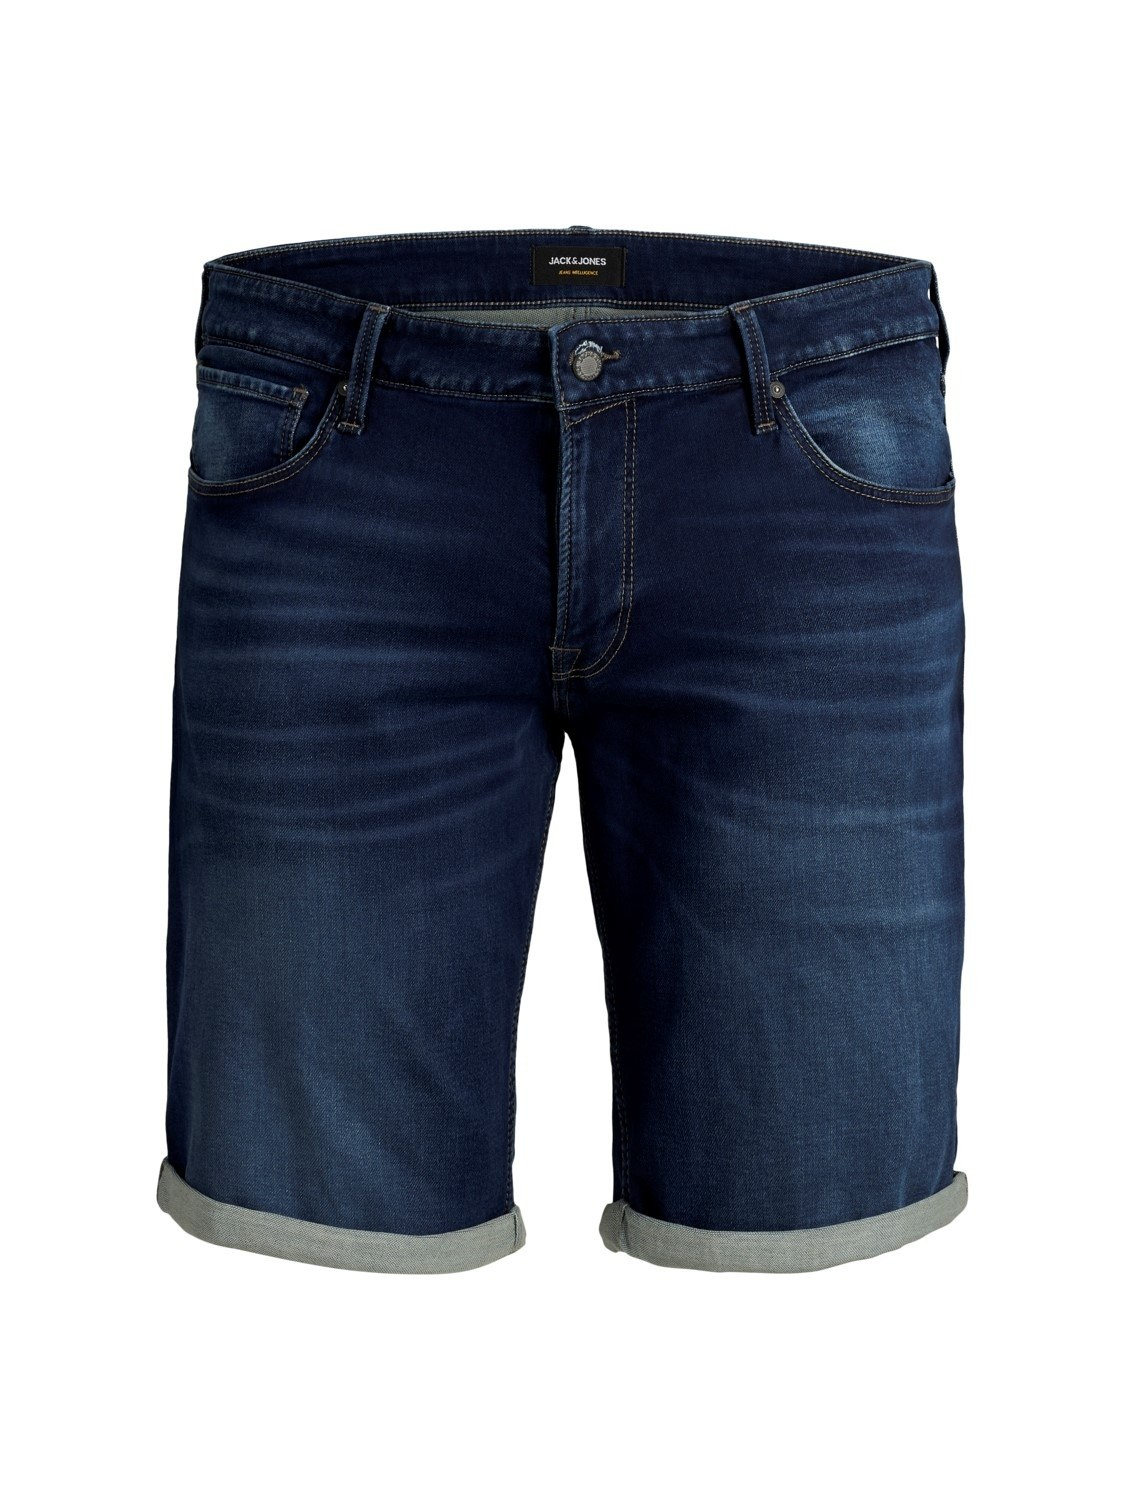 edf808d23 Mørkeblå denim shorts (Indigo Knit) - Jack & Jones